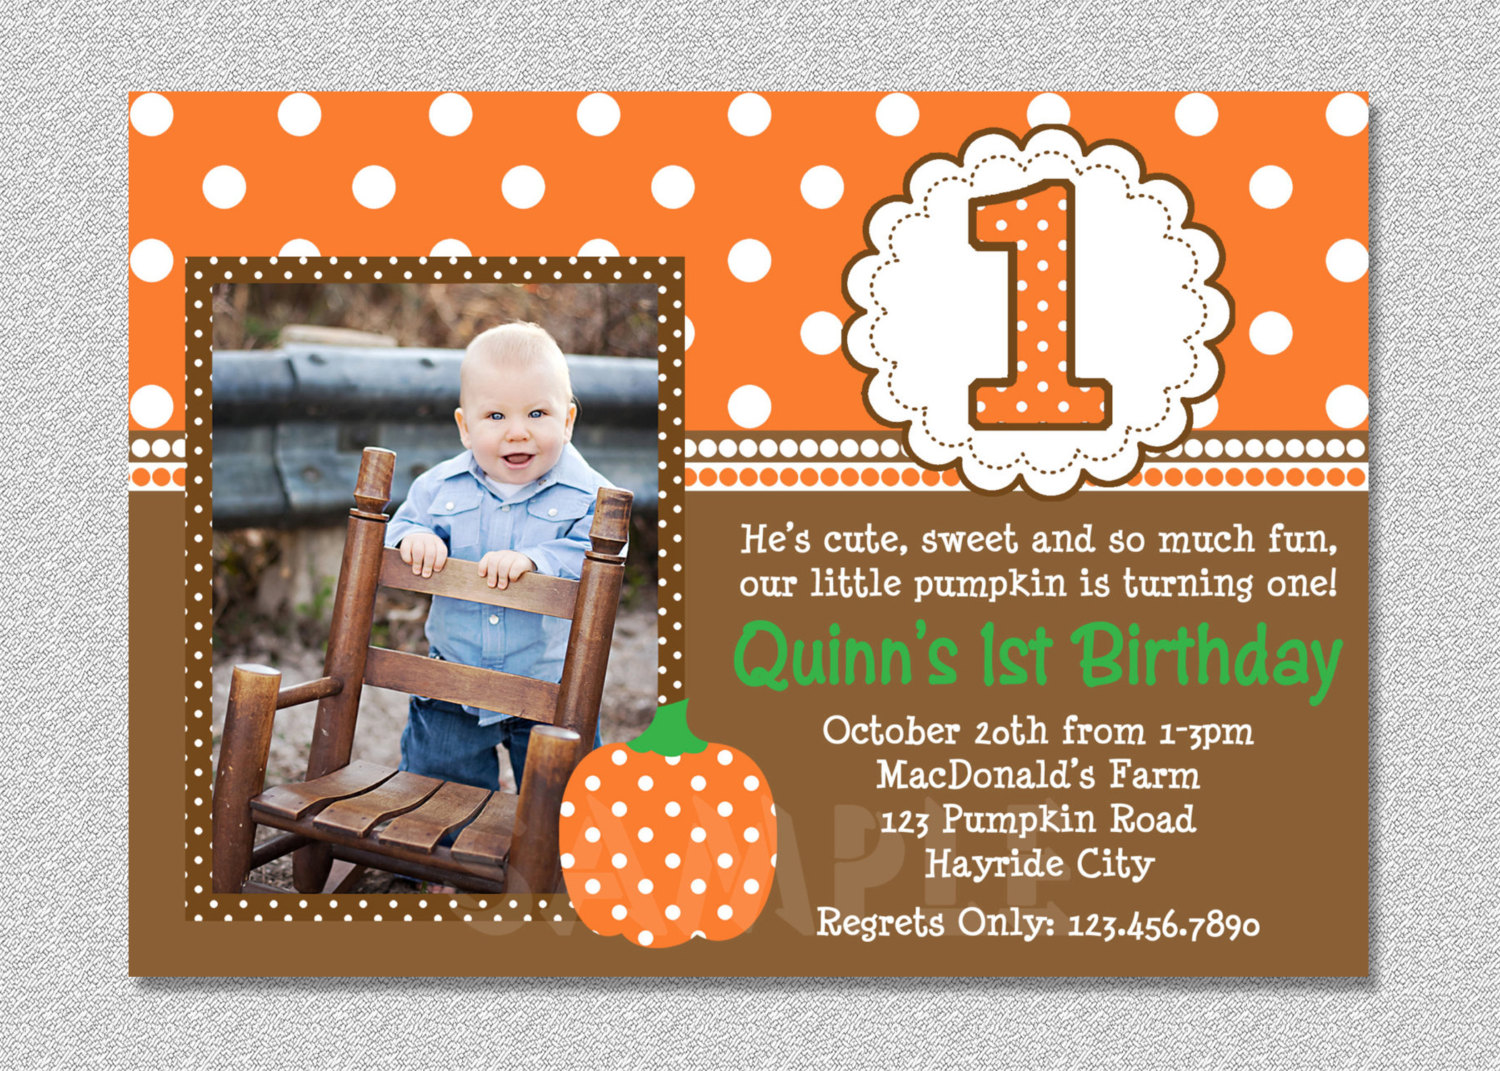 1st birthday pumpkin clipart clipart freeuse 1st birthday pumpkin clipart - ClipartFest clipart freeuse